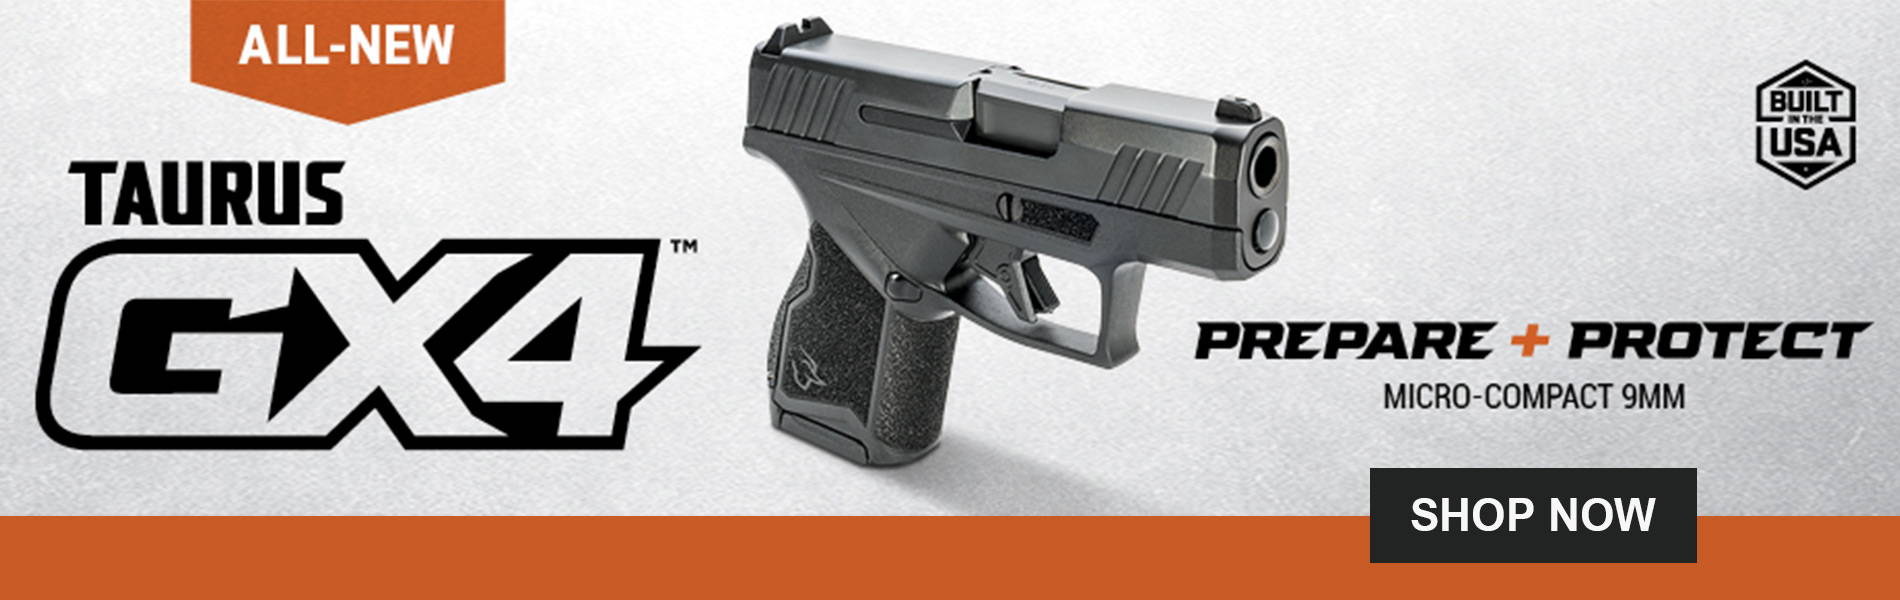 The All-New Taurus GX-4 Is Here! Micro-Compact 9mm Handgun Built in the USA! $349.99  - SHOP NOW!